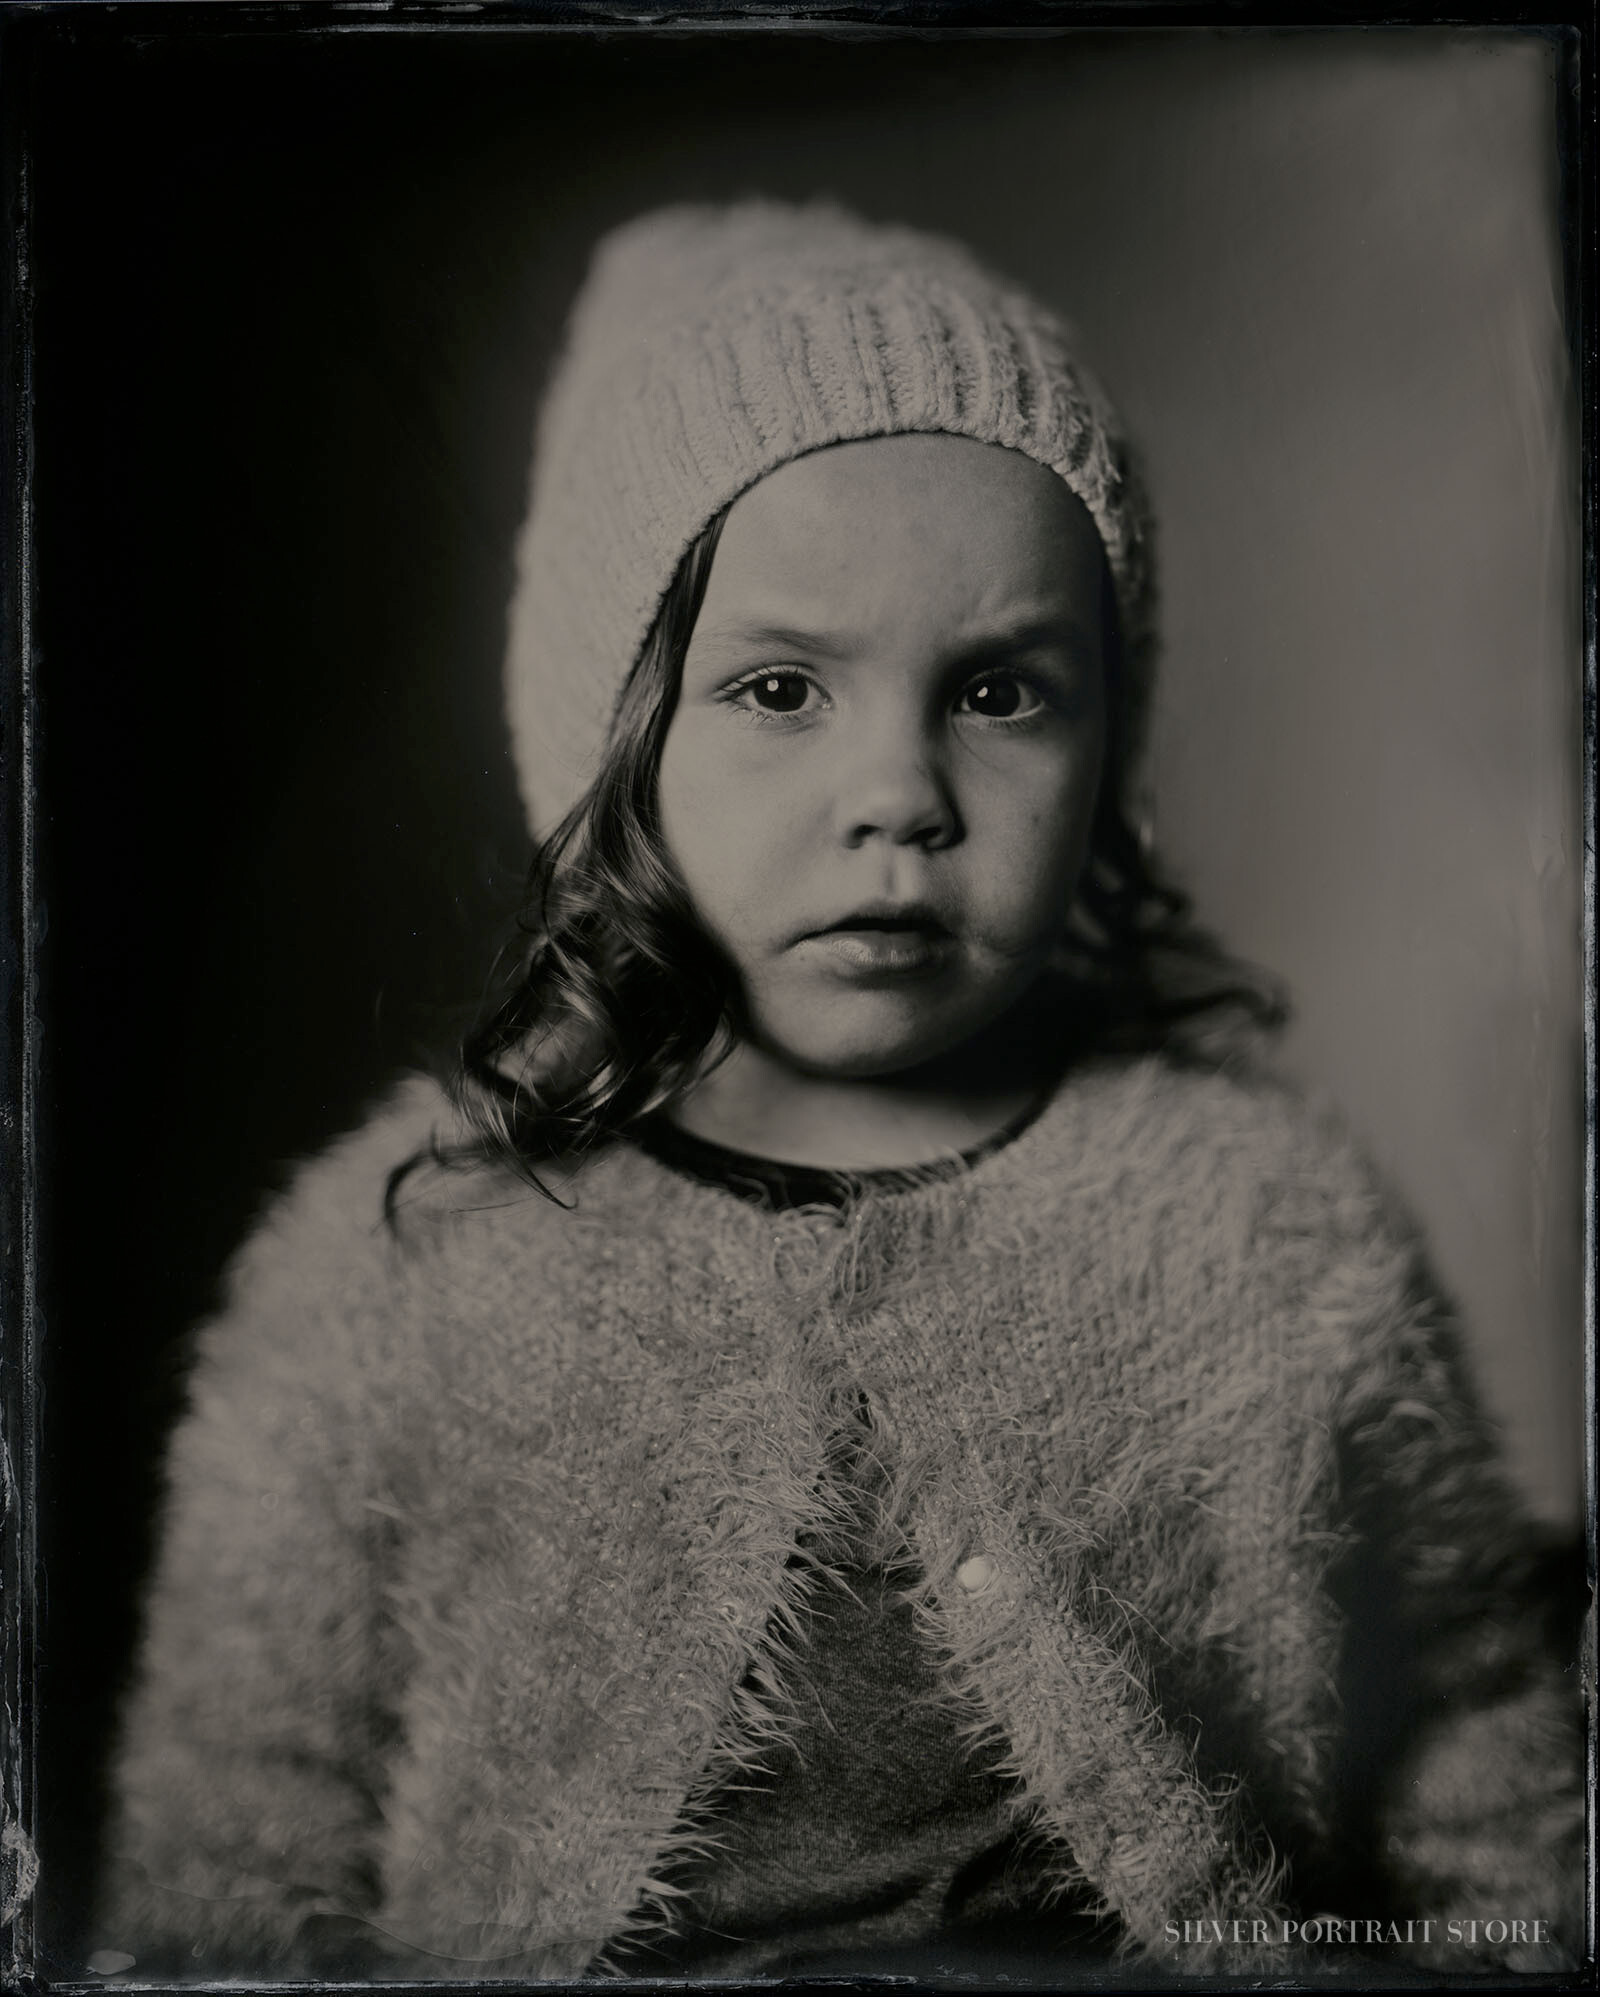 Leah-Silver Portrait Store-Scan from Wet plate collodion-Tintype 20 x 25 cm